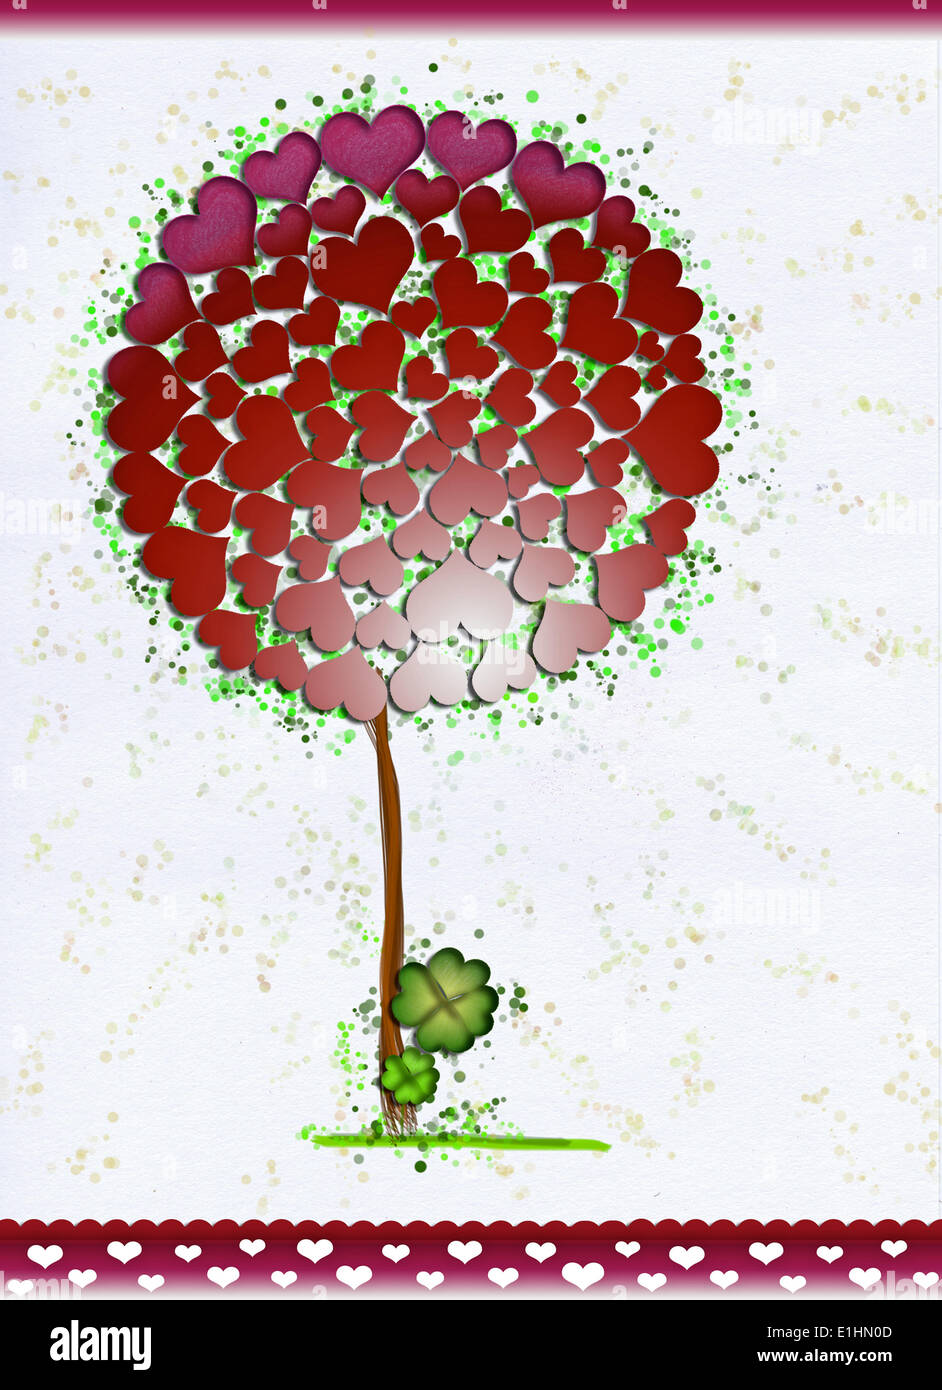 Beautiful Tree with Symbol Hearts - Valentine's or Saint Patrick's Day. Clover Stock Photo